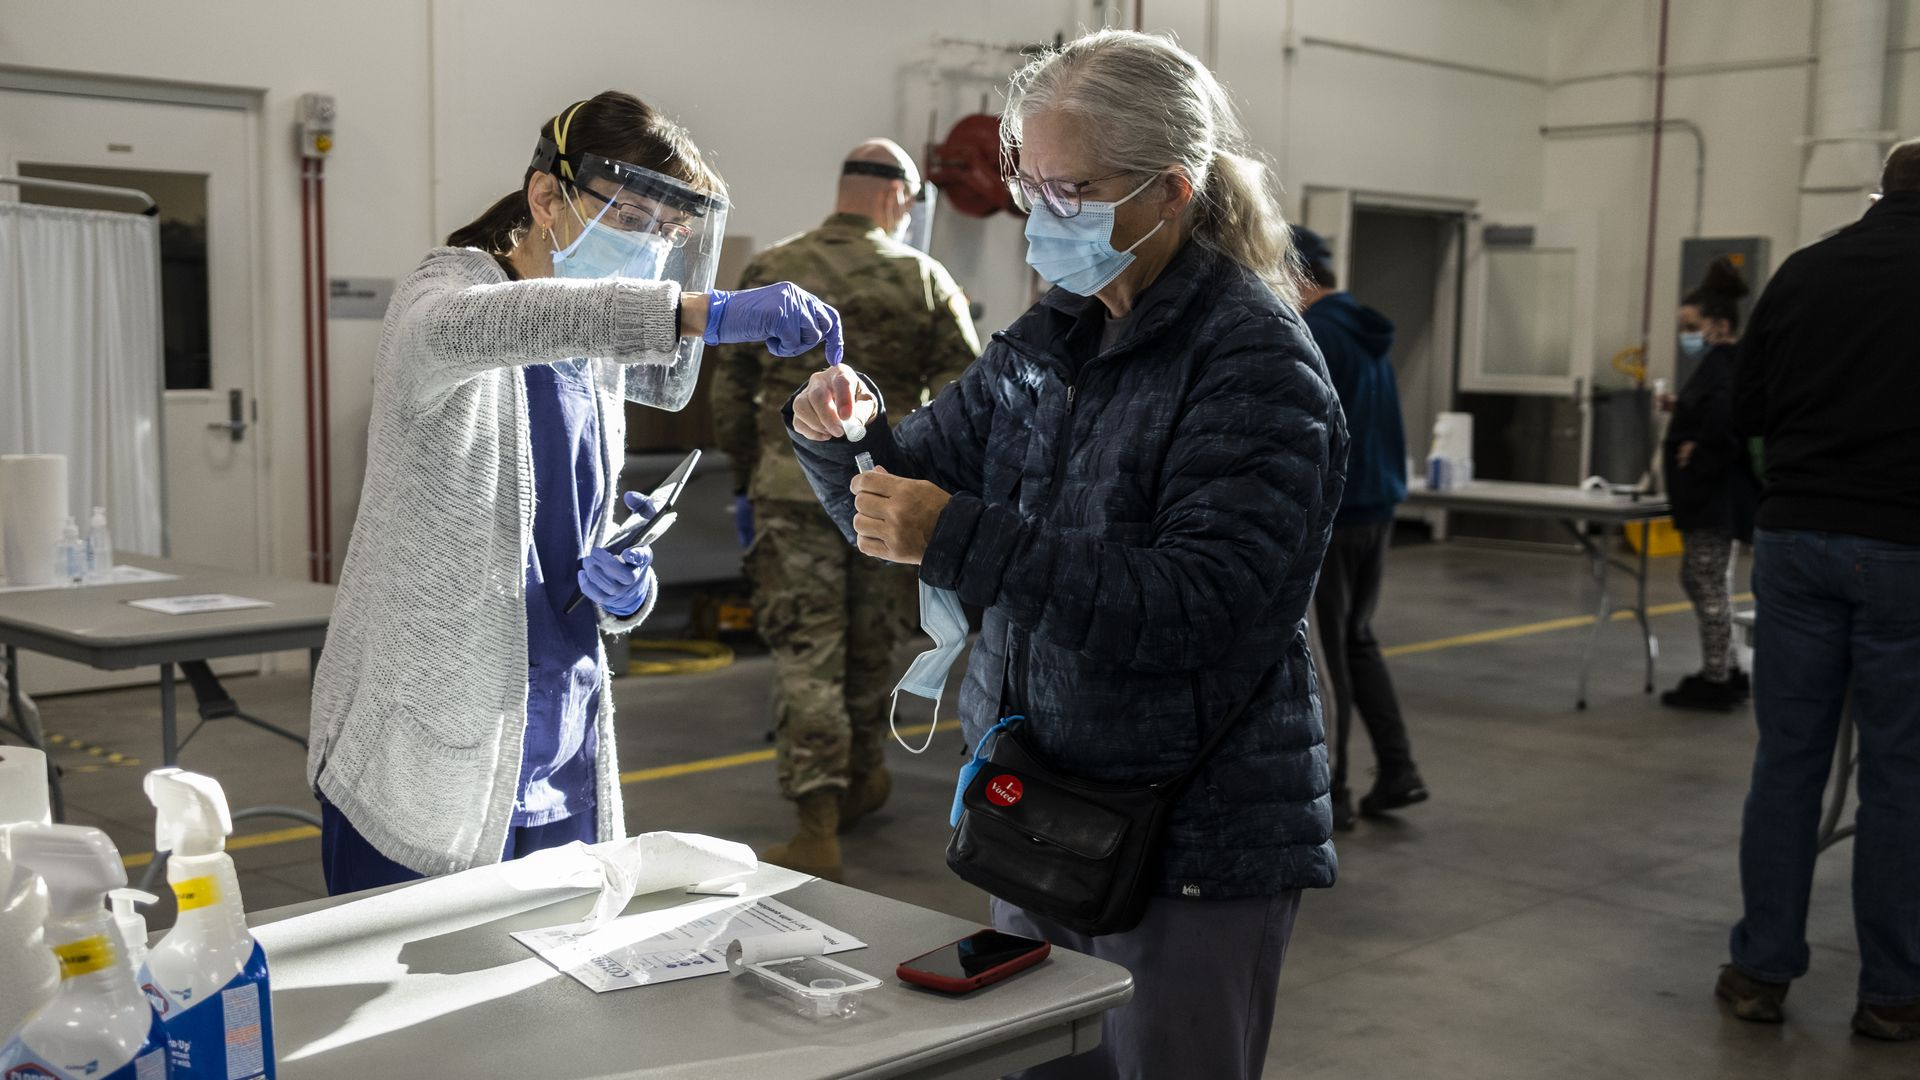 Photo of a masked person getting tested as a health care worker assists them